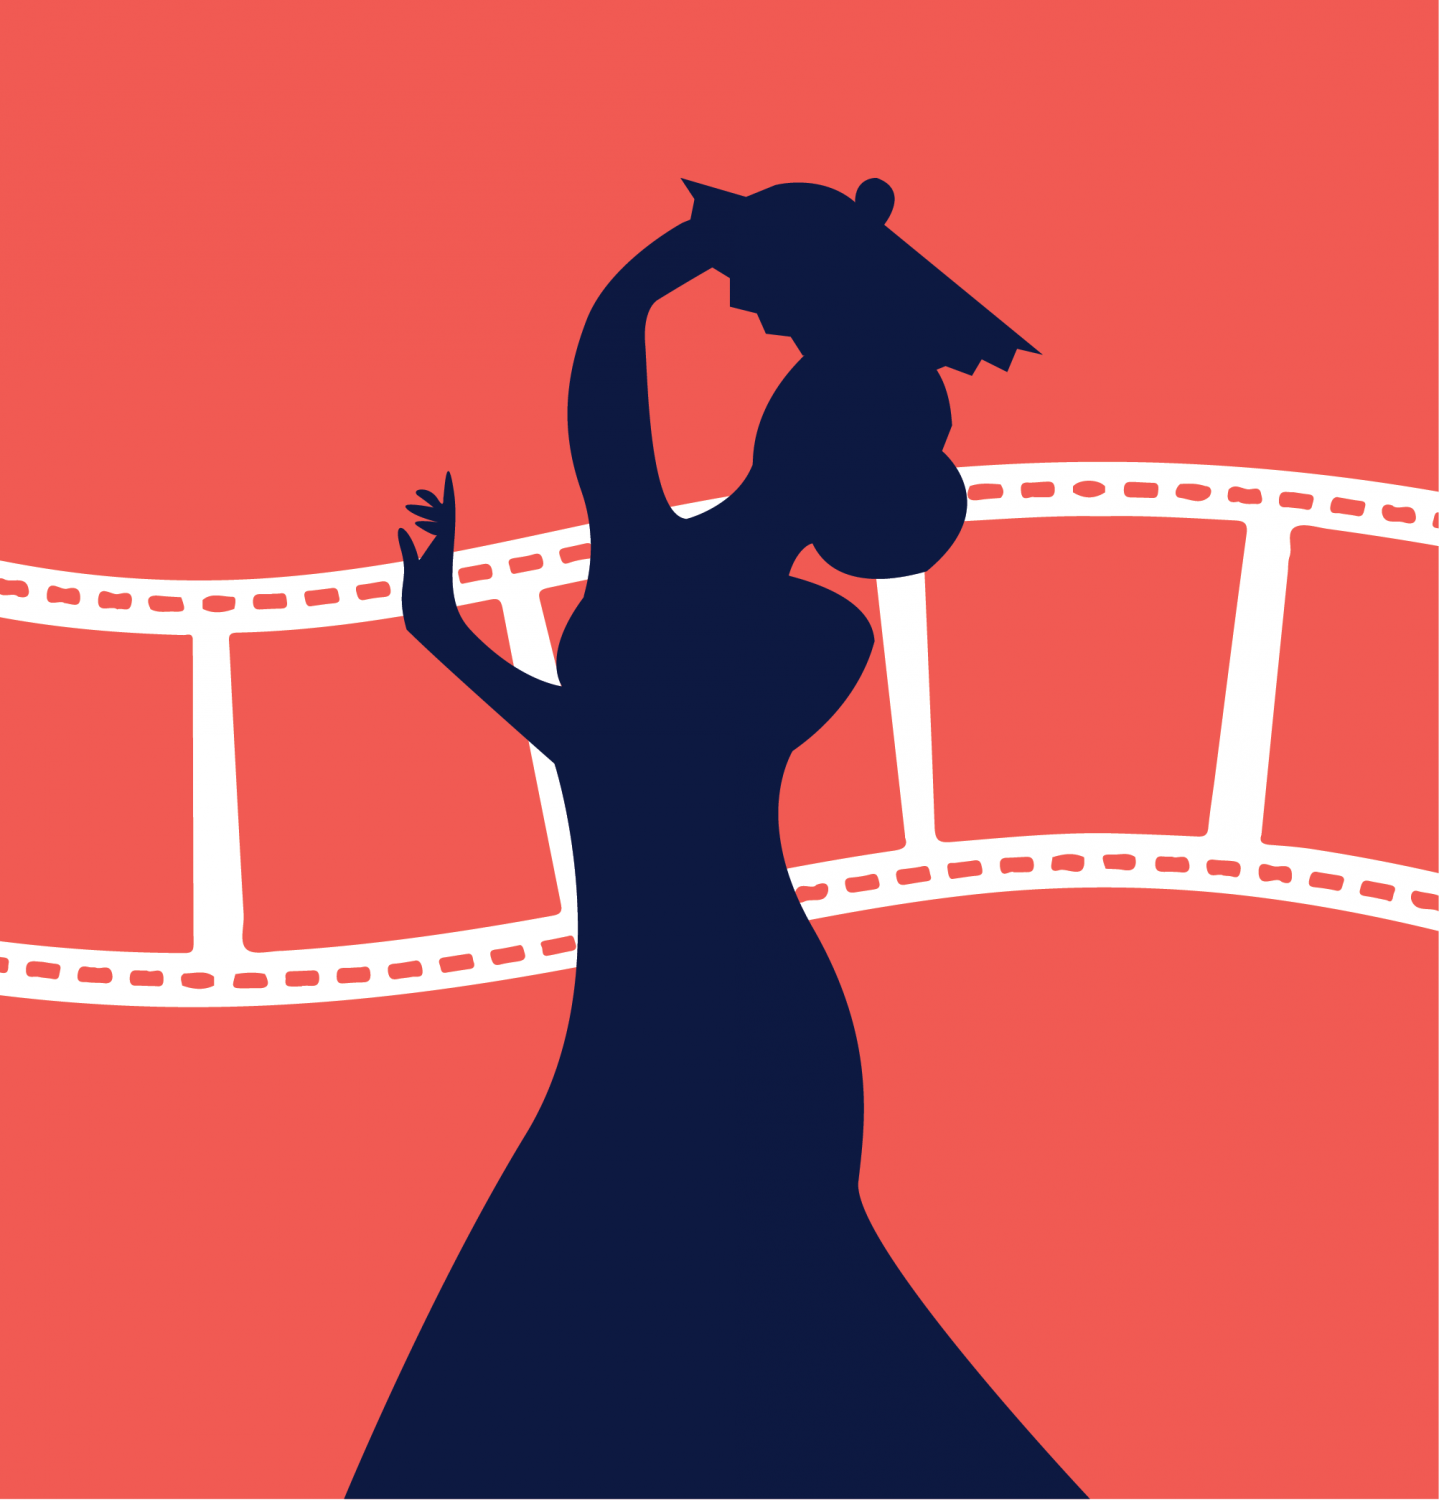 Clipart 0f women in wheelchair seeing herself dancing in mirror svg free library Flatlands Film Festival dances into its sixth year | The Daily Illini svg free library